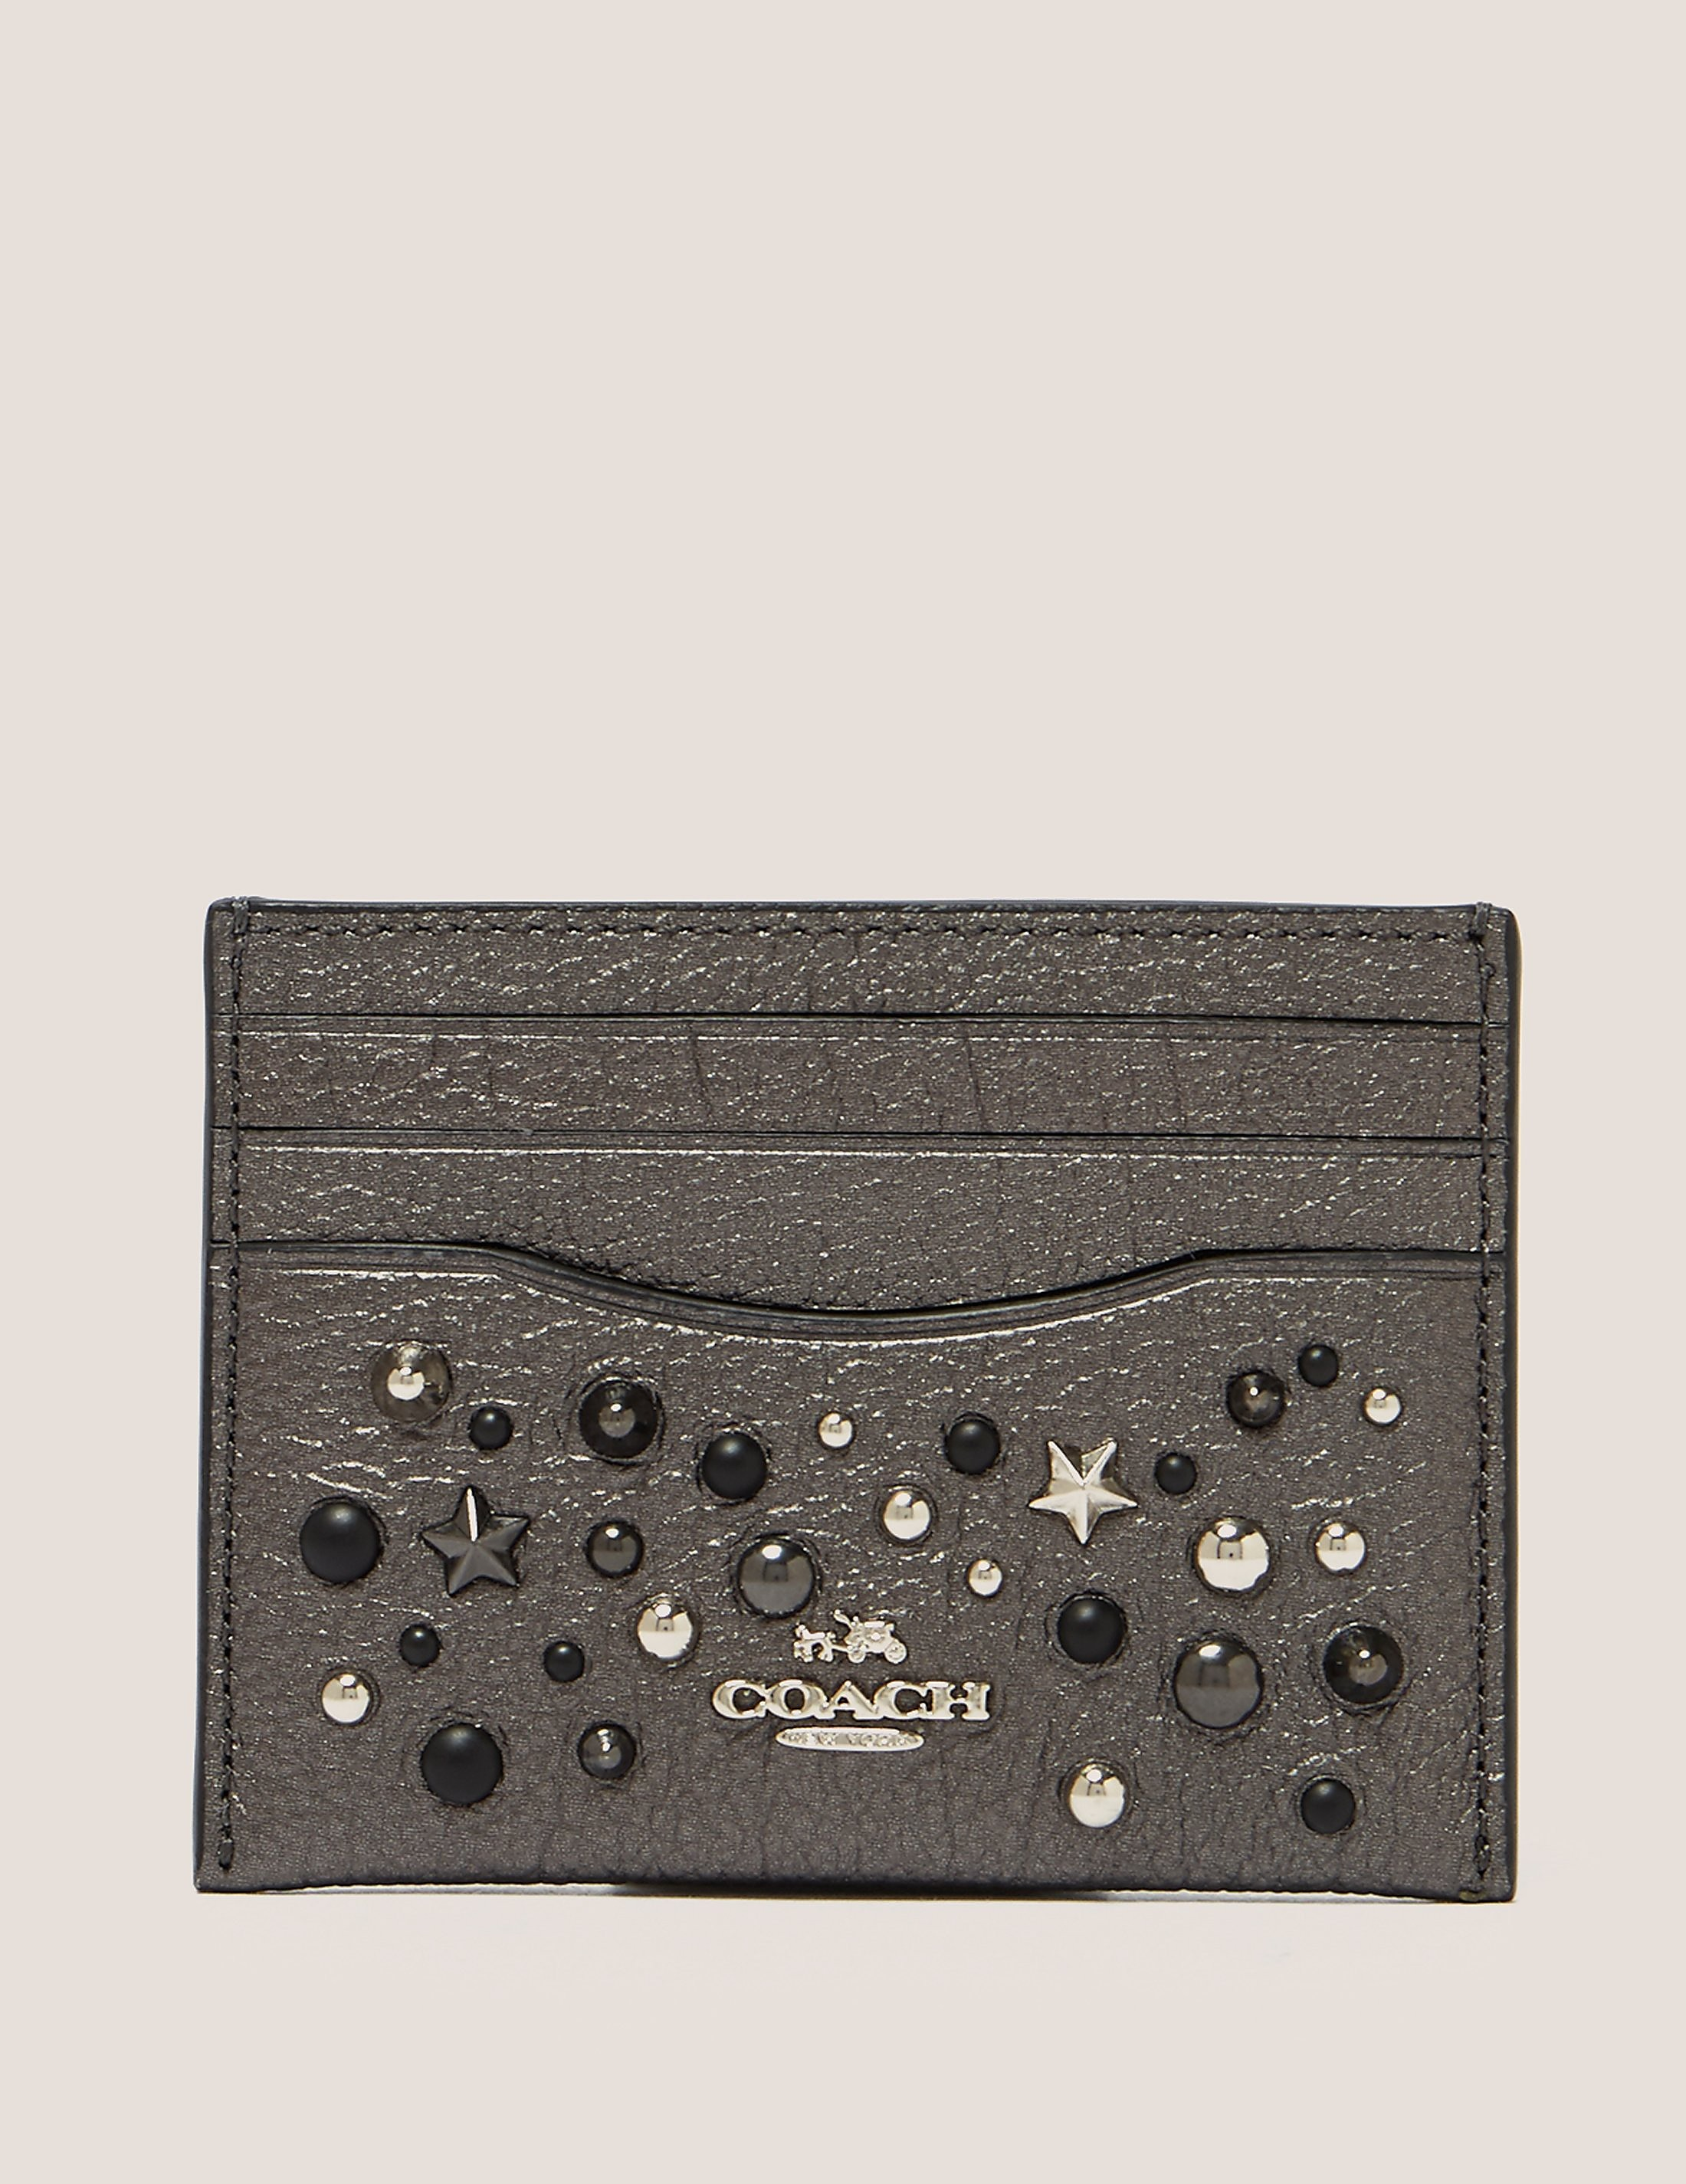 COACH Embellished Card Case